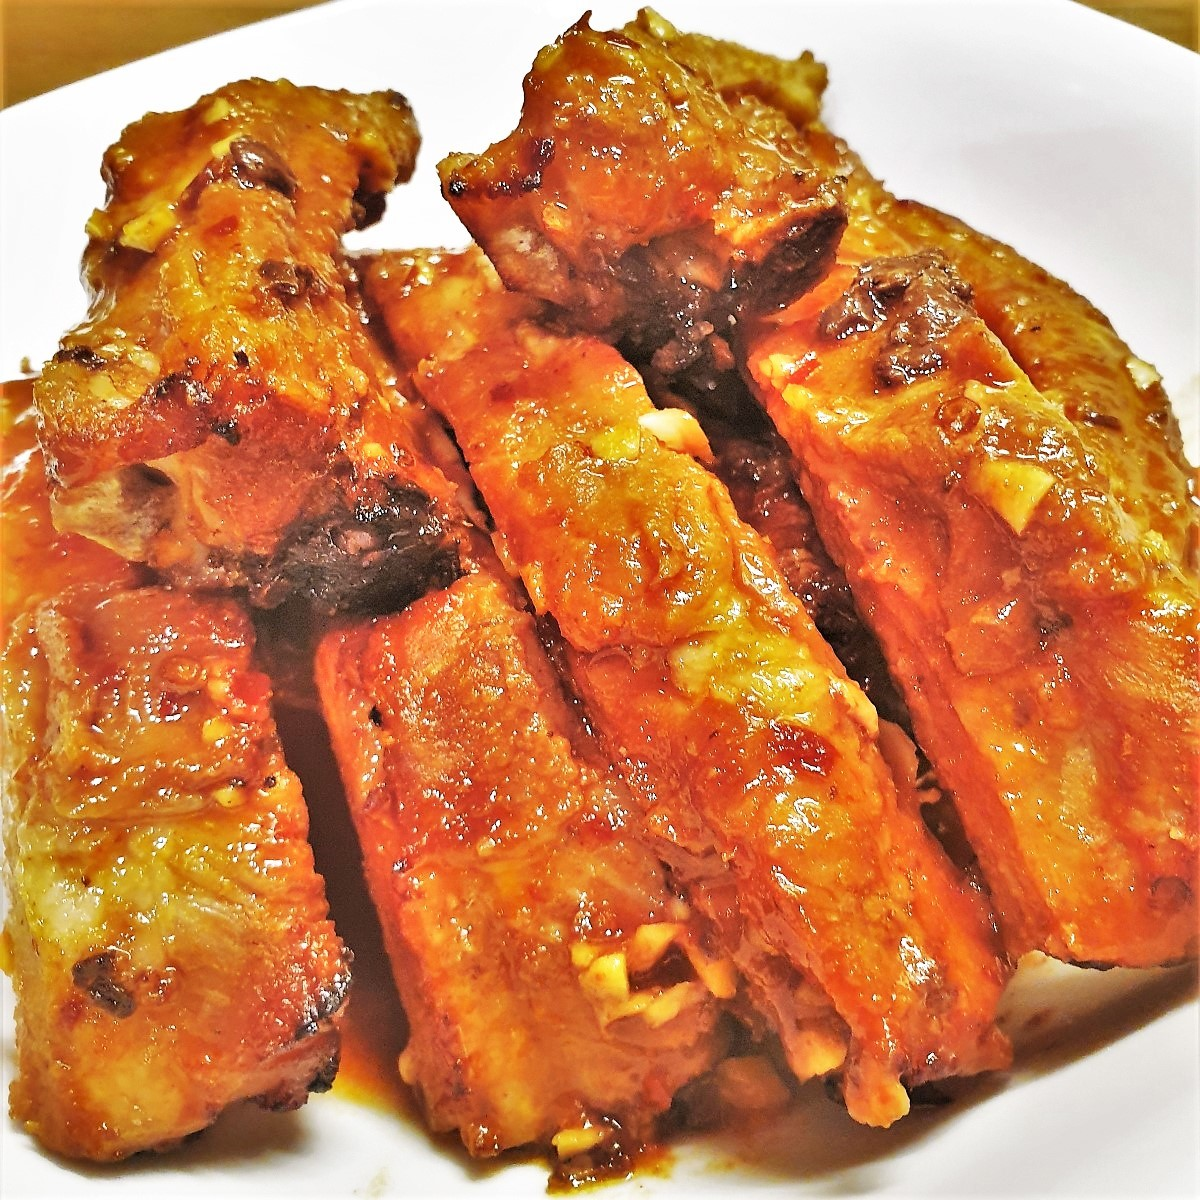 A plate of sticky spare ribs.